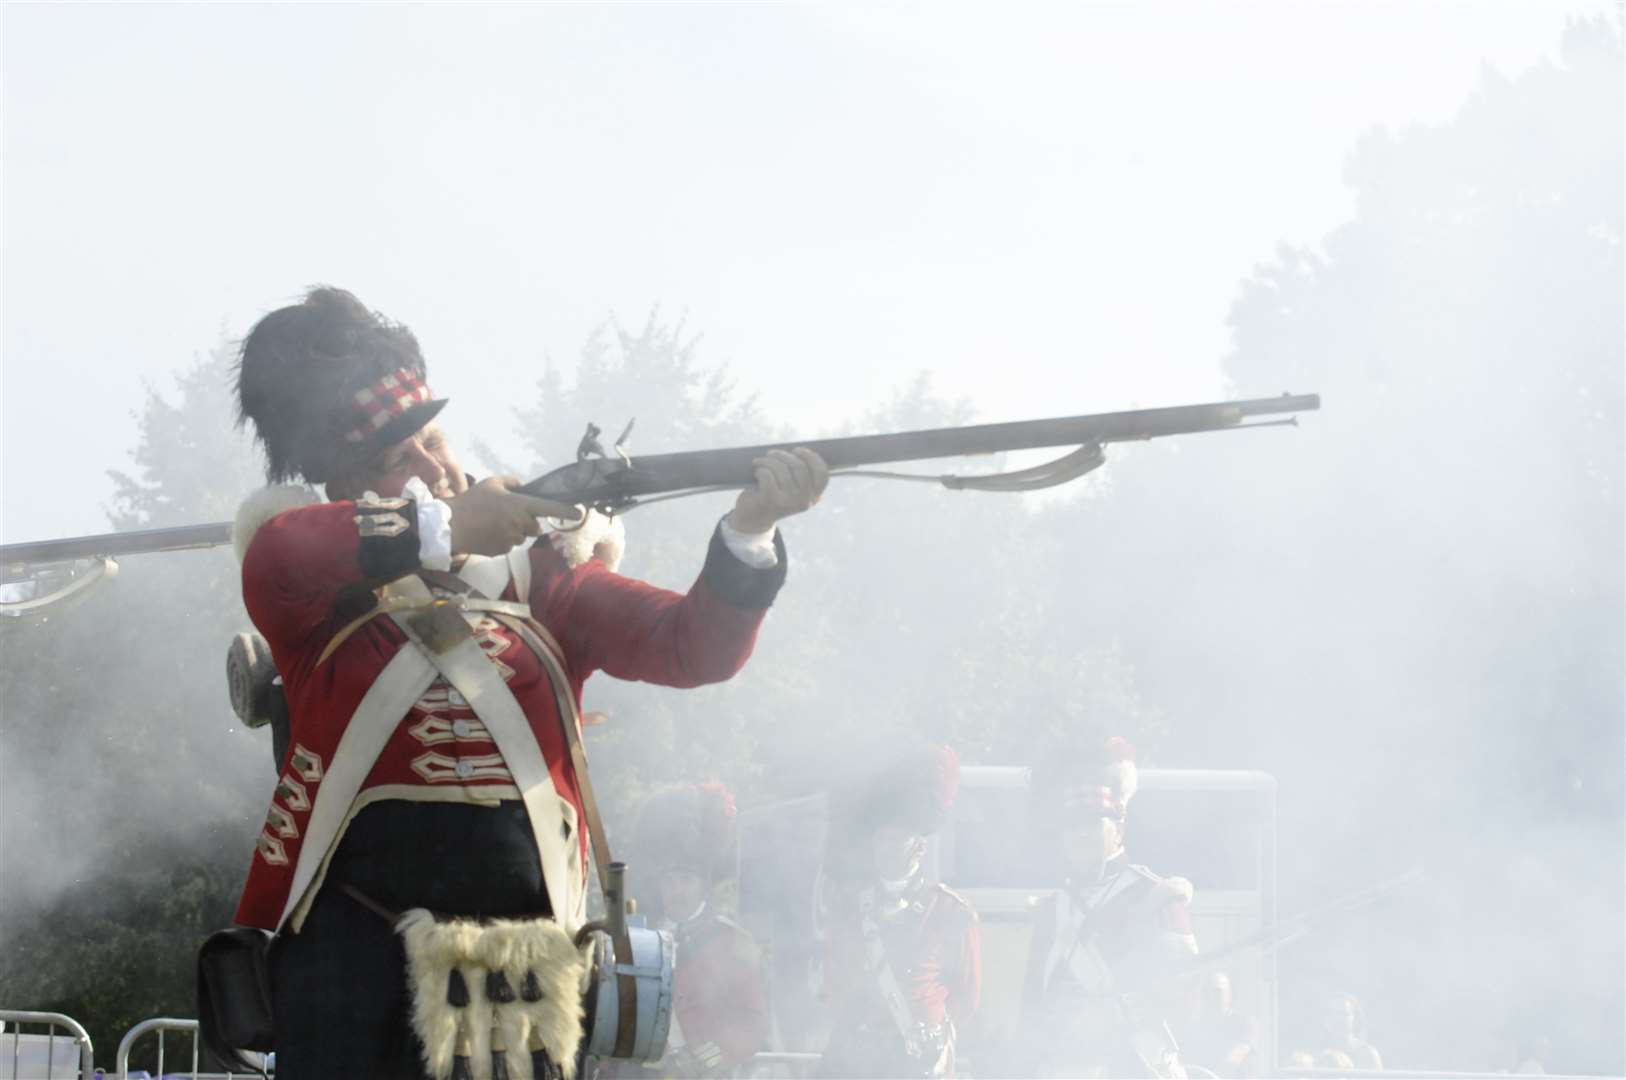 During the Maidstone River Festival 2011, 42th Highland Regiment re-enact senarios from 1815 Picture: Ruth Cuerden